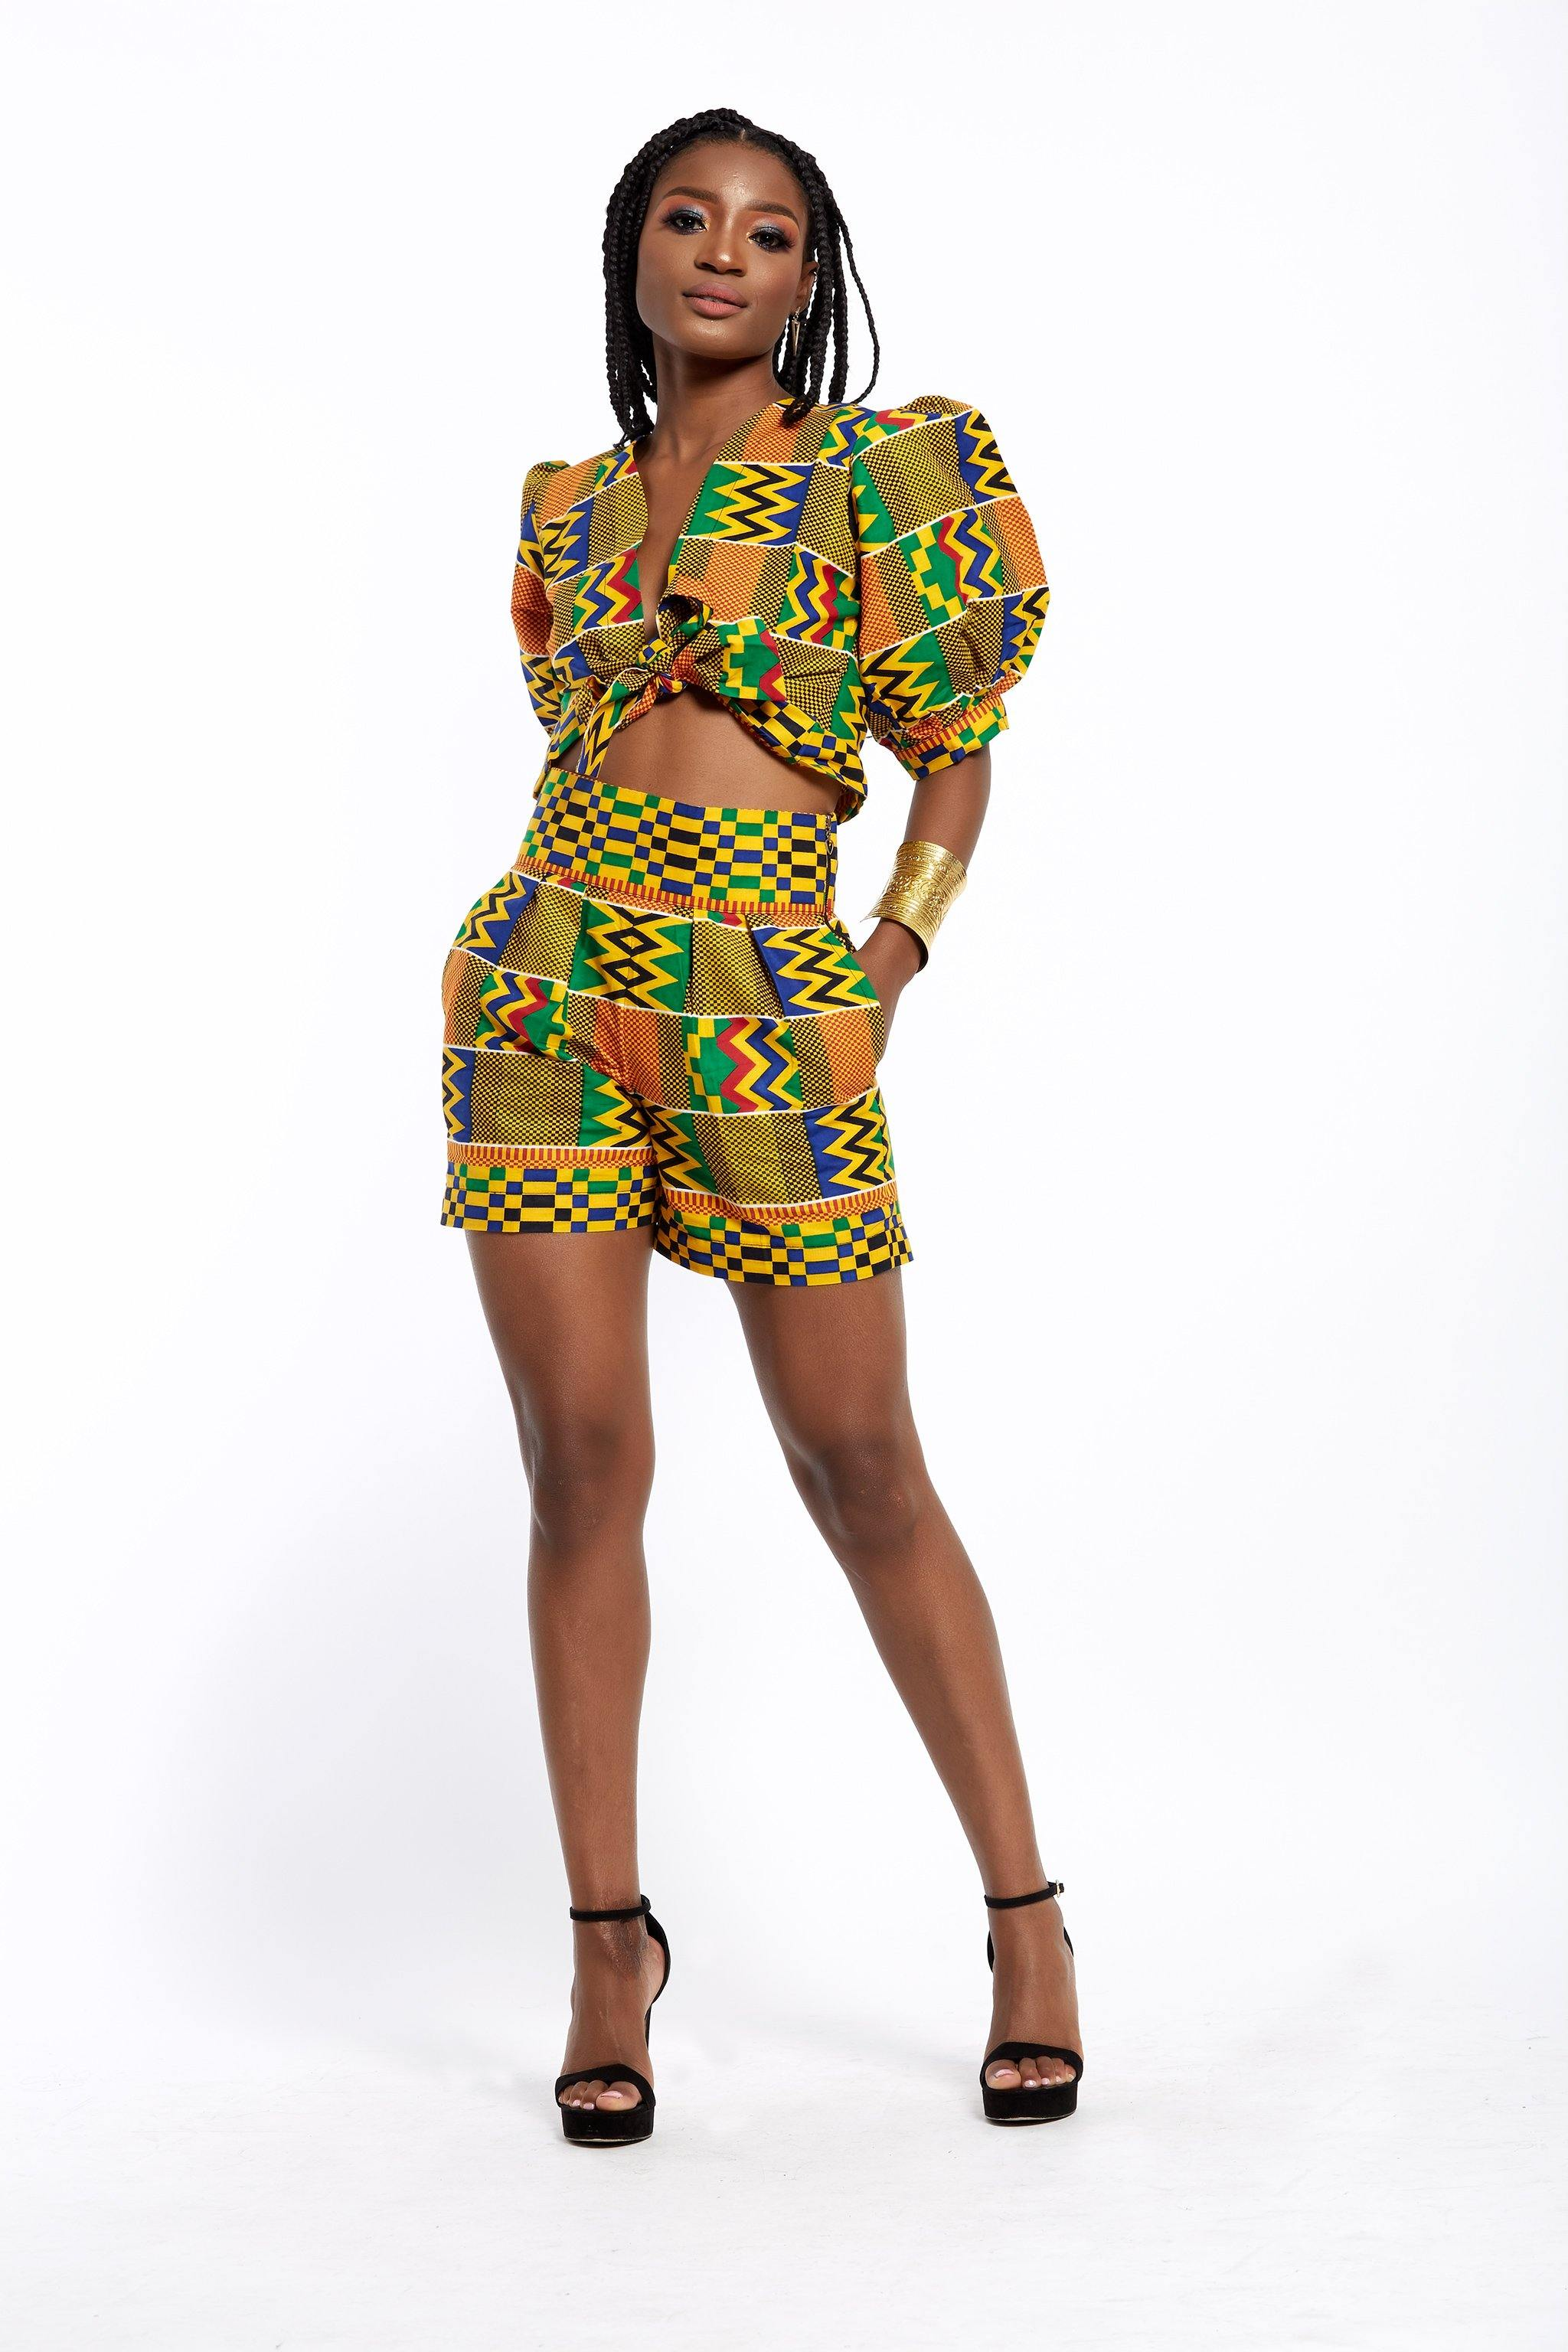 WAA- Crop Front-tie Top with Puff Sleeves (Kente Print) - waafashion